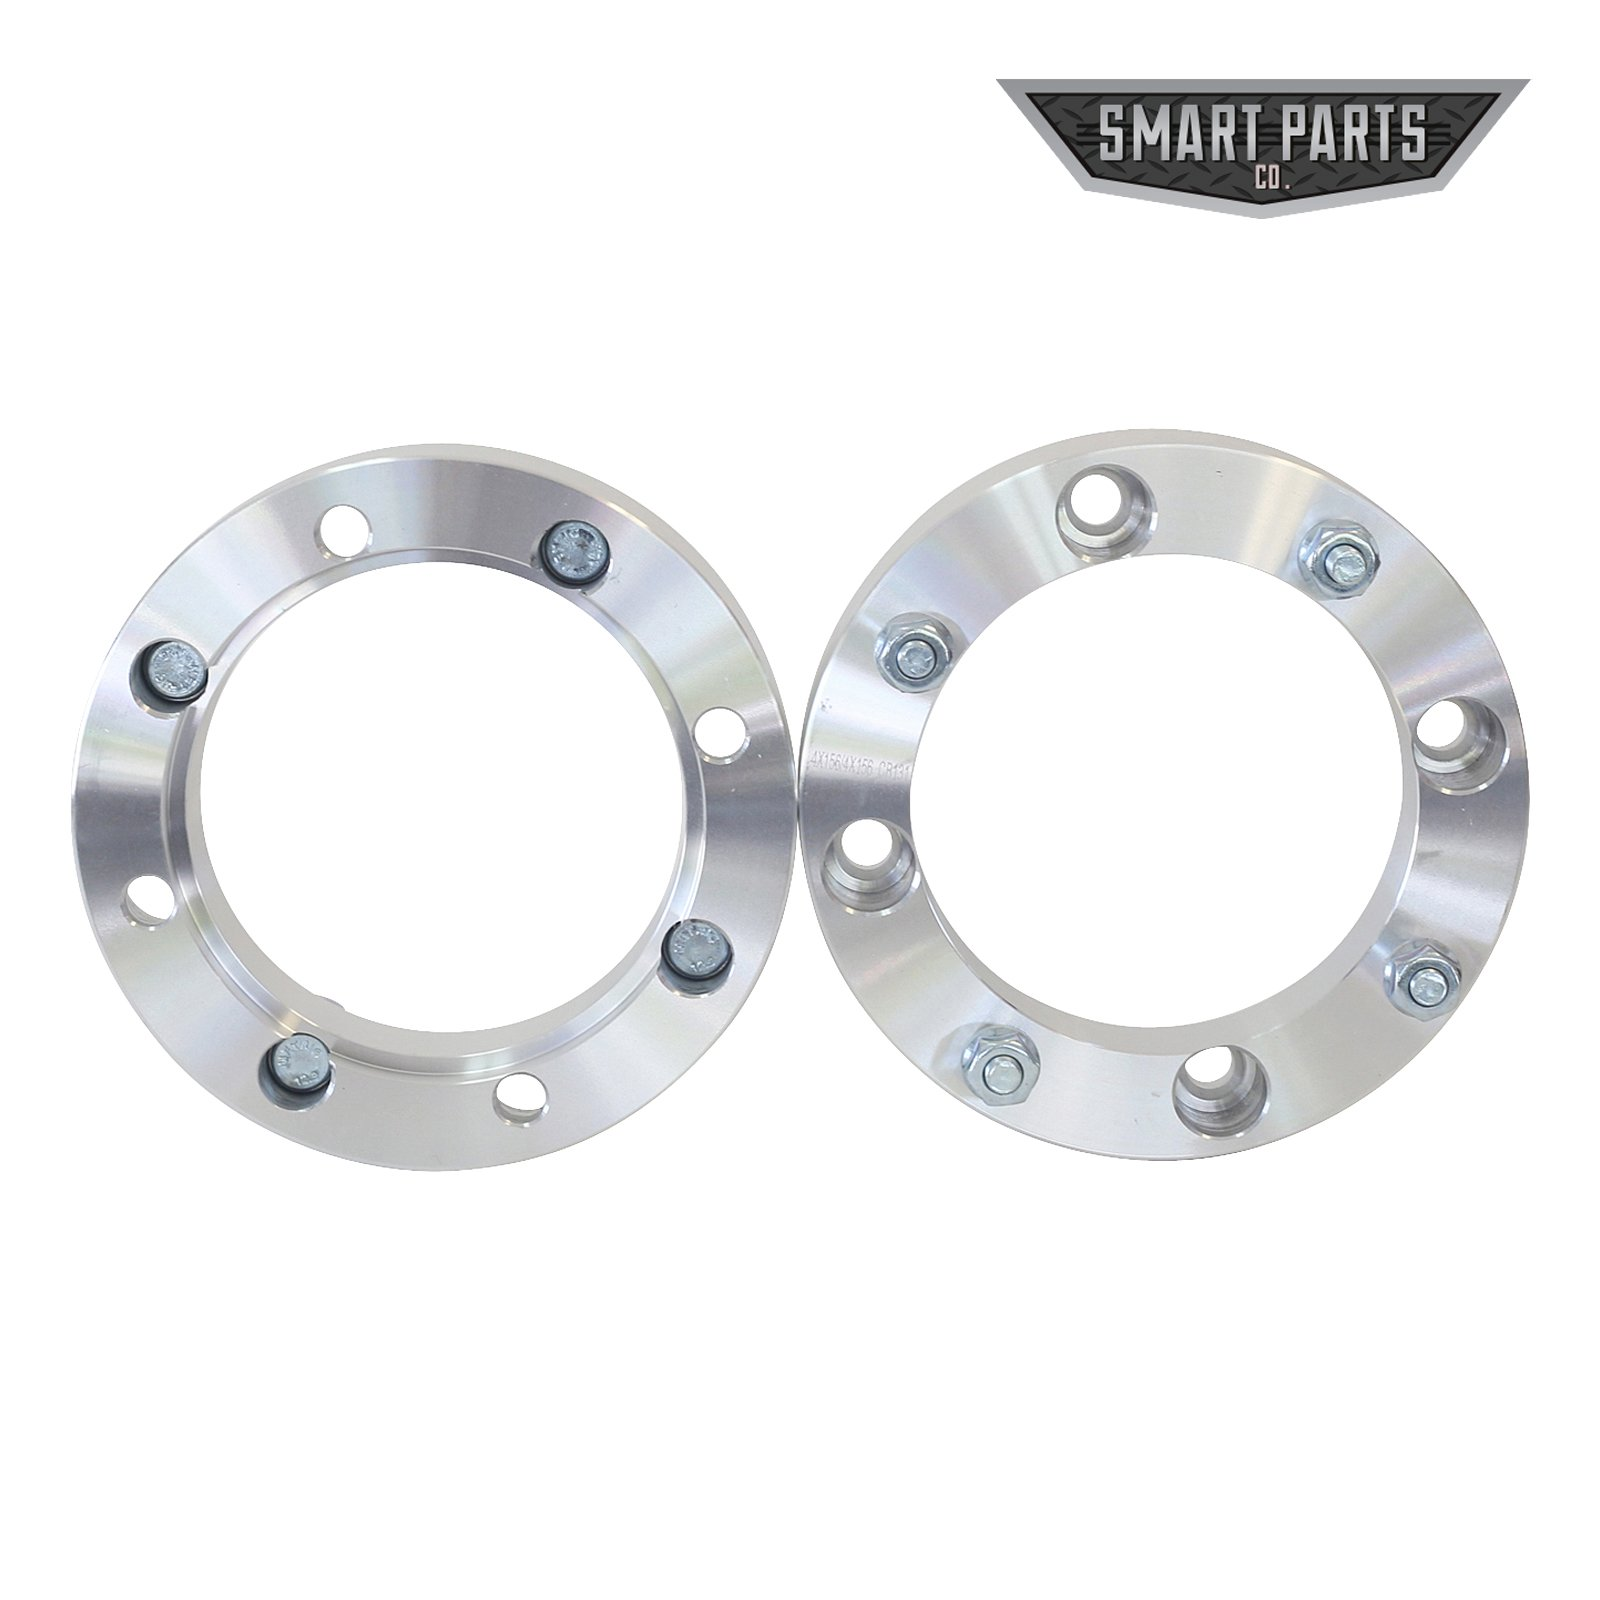 "4 ATV Wheel Spacers 4x156 – wheel spacer 1.50"" thick; I.D.=131mm; counter bore=141mm X 9.1mm deep; studs = M12x1.5 Polaris RZR Ranger by Smart Parts (Image #1)"